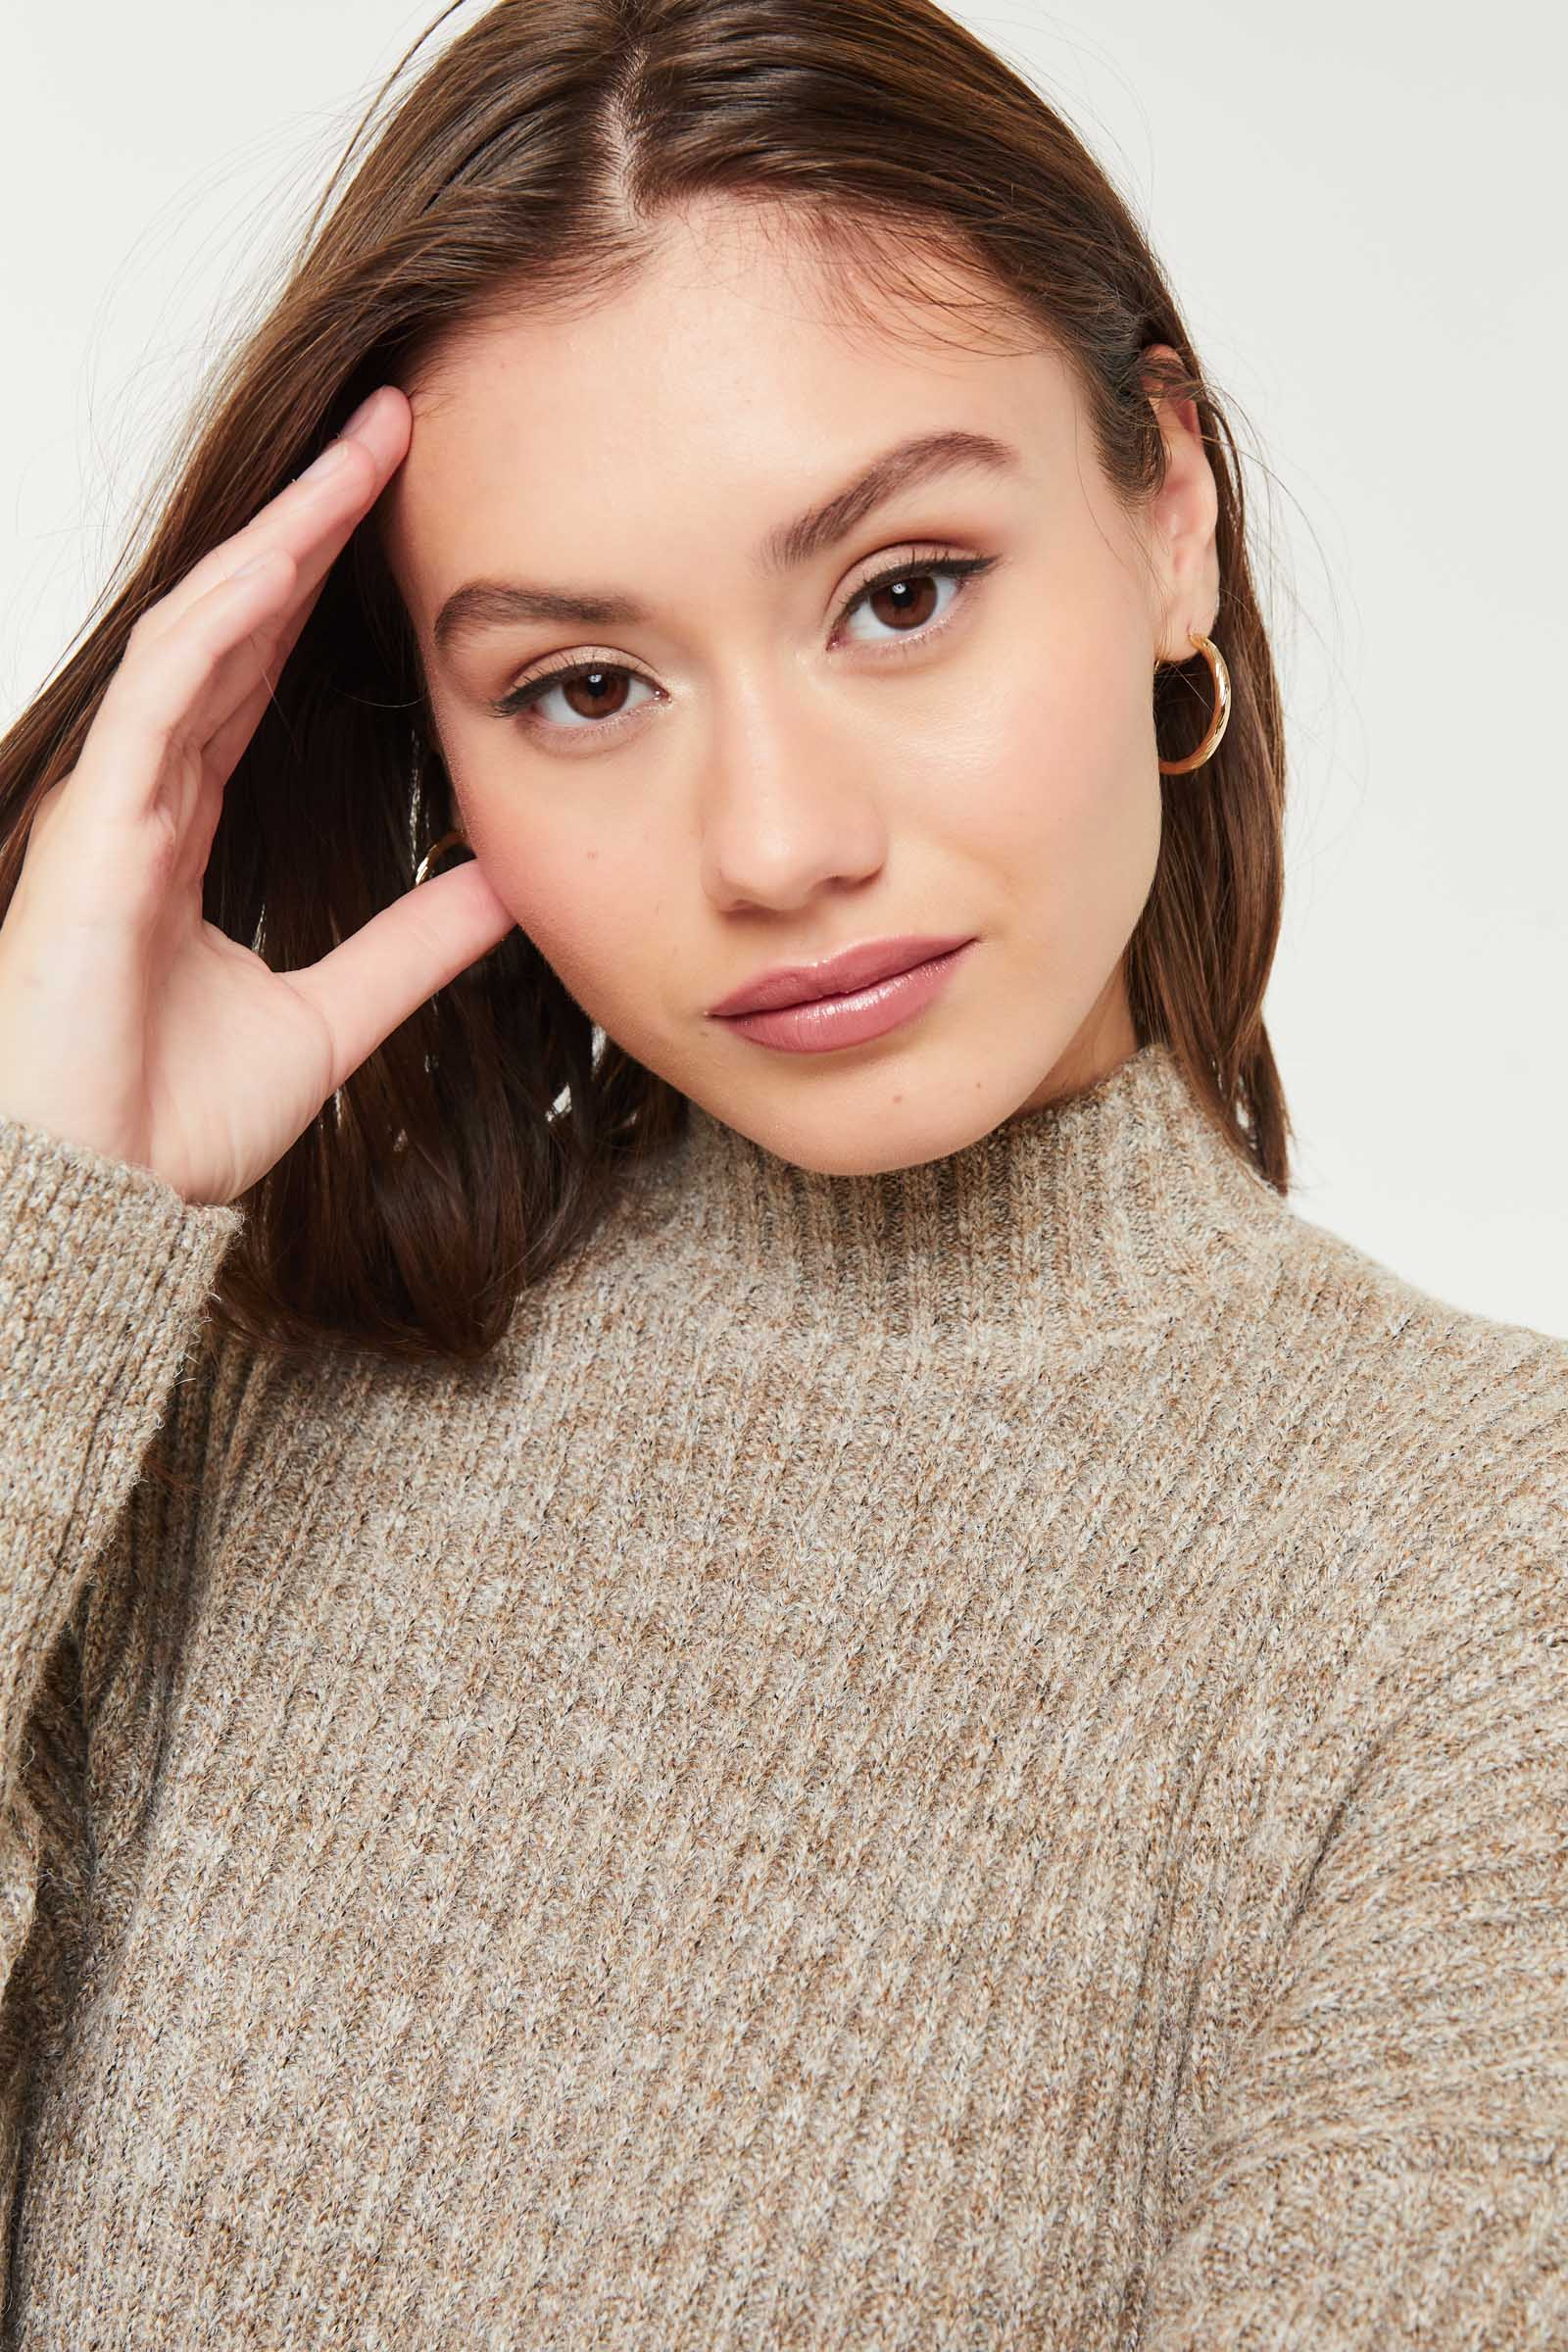 Long Mock Neck Sweater with Side Slits